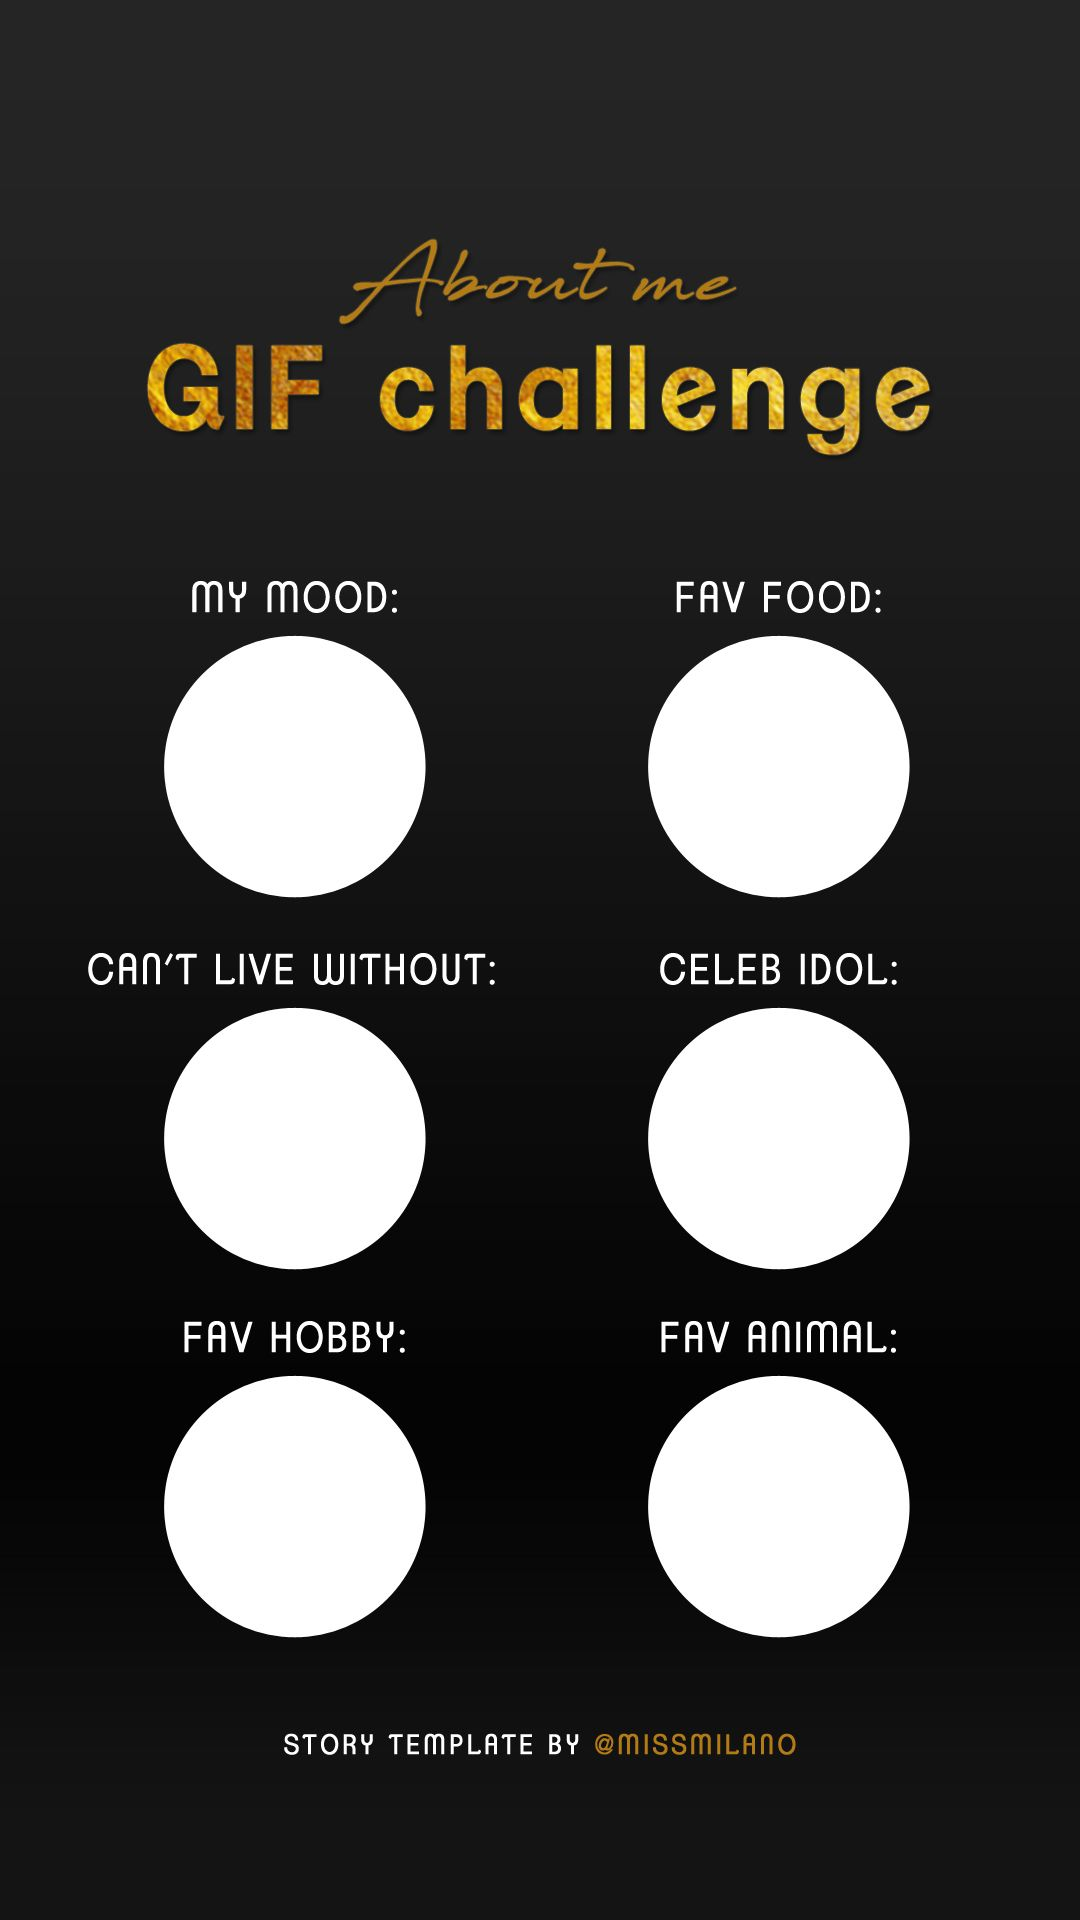 Insta story template - GIF challenge > about me  For more